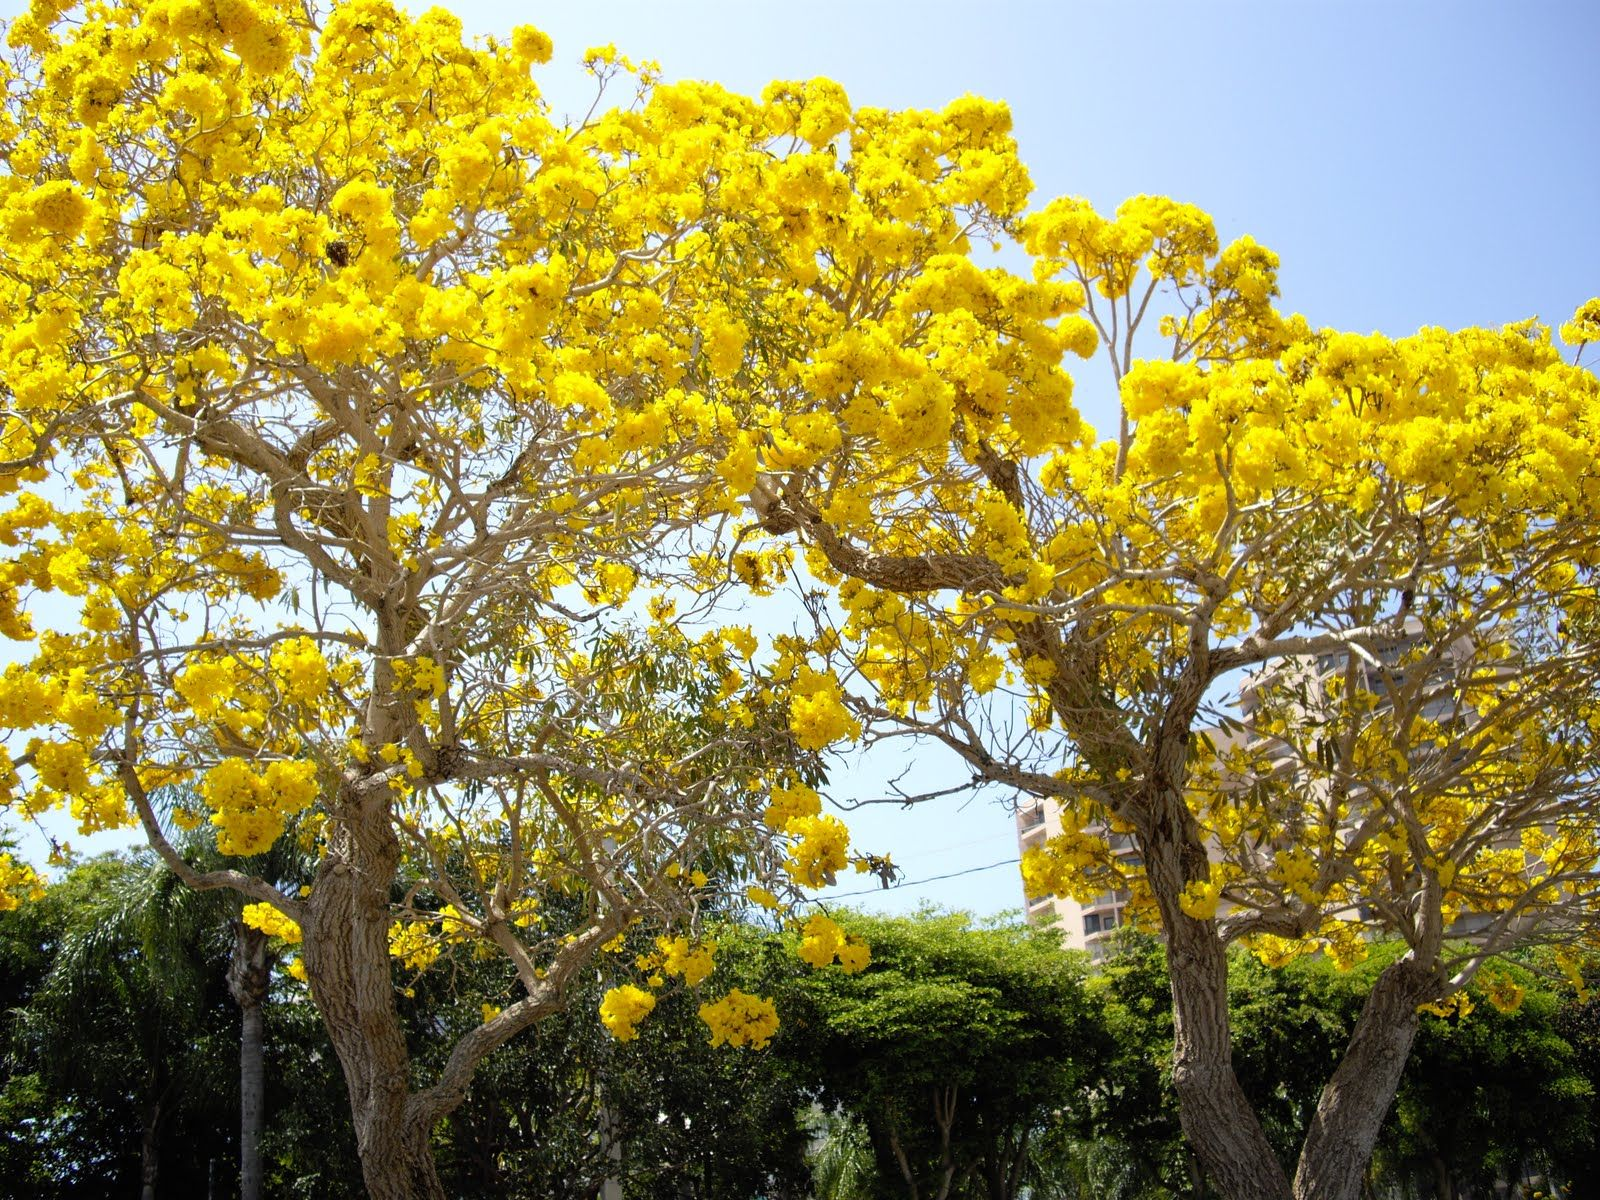 We Call Them The Yellow Trumpet Trees But Real Name Is Tabebuia Chrysotricha They